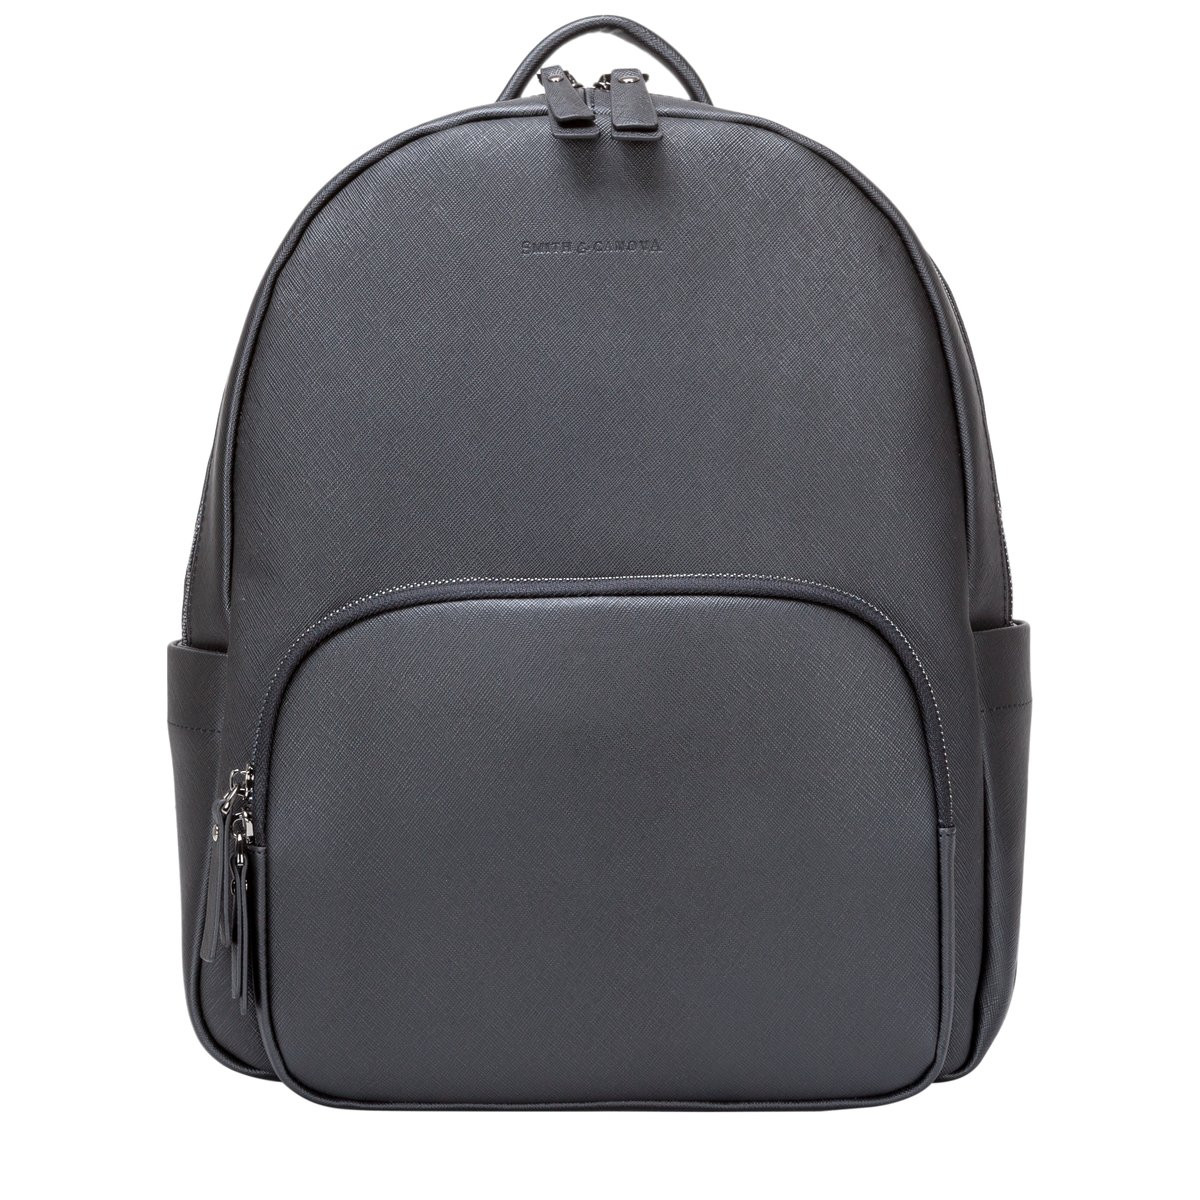 3582e9f467 Saffiano Leather Zip Around Backpack